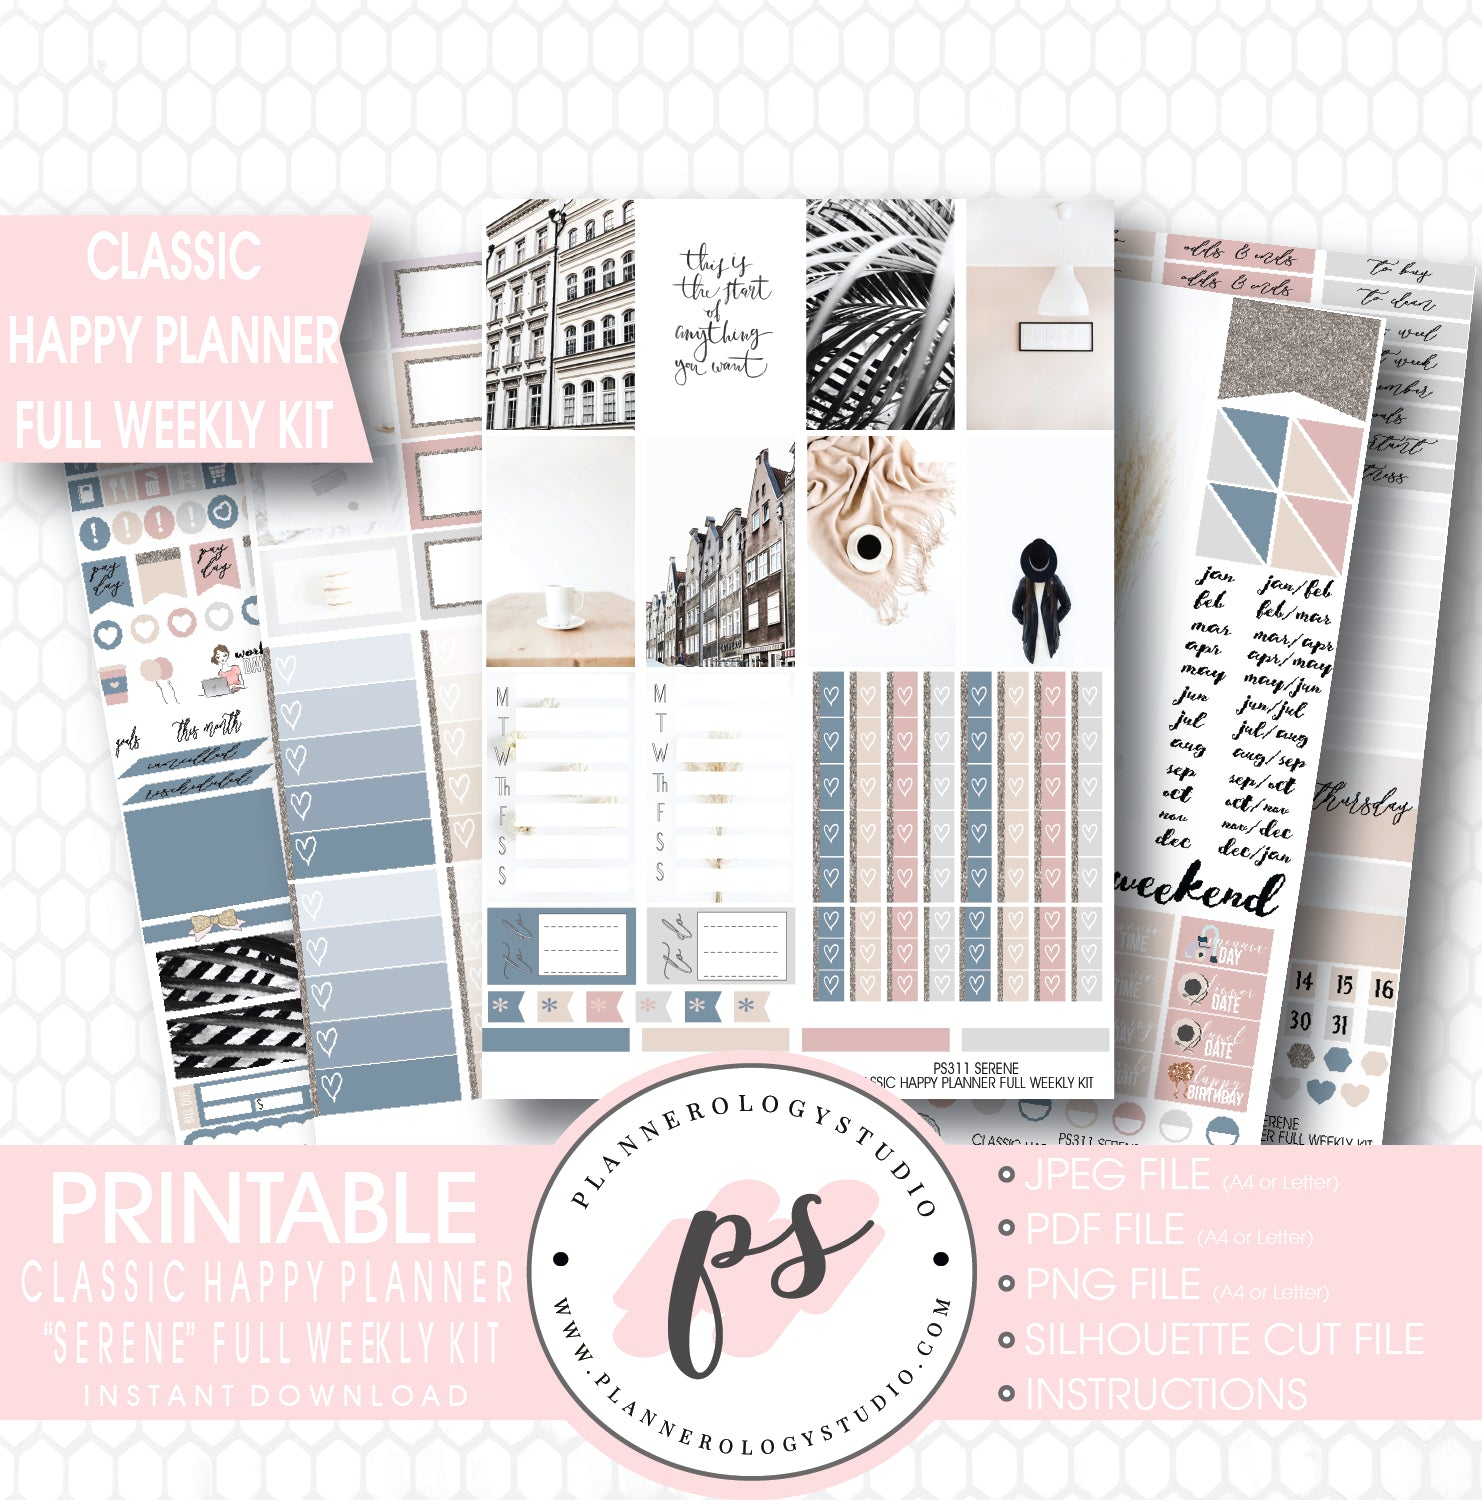 Serene Stock Photography Full Weekly Kit Digital Printable Planner Stickers For Use With Classic Happy